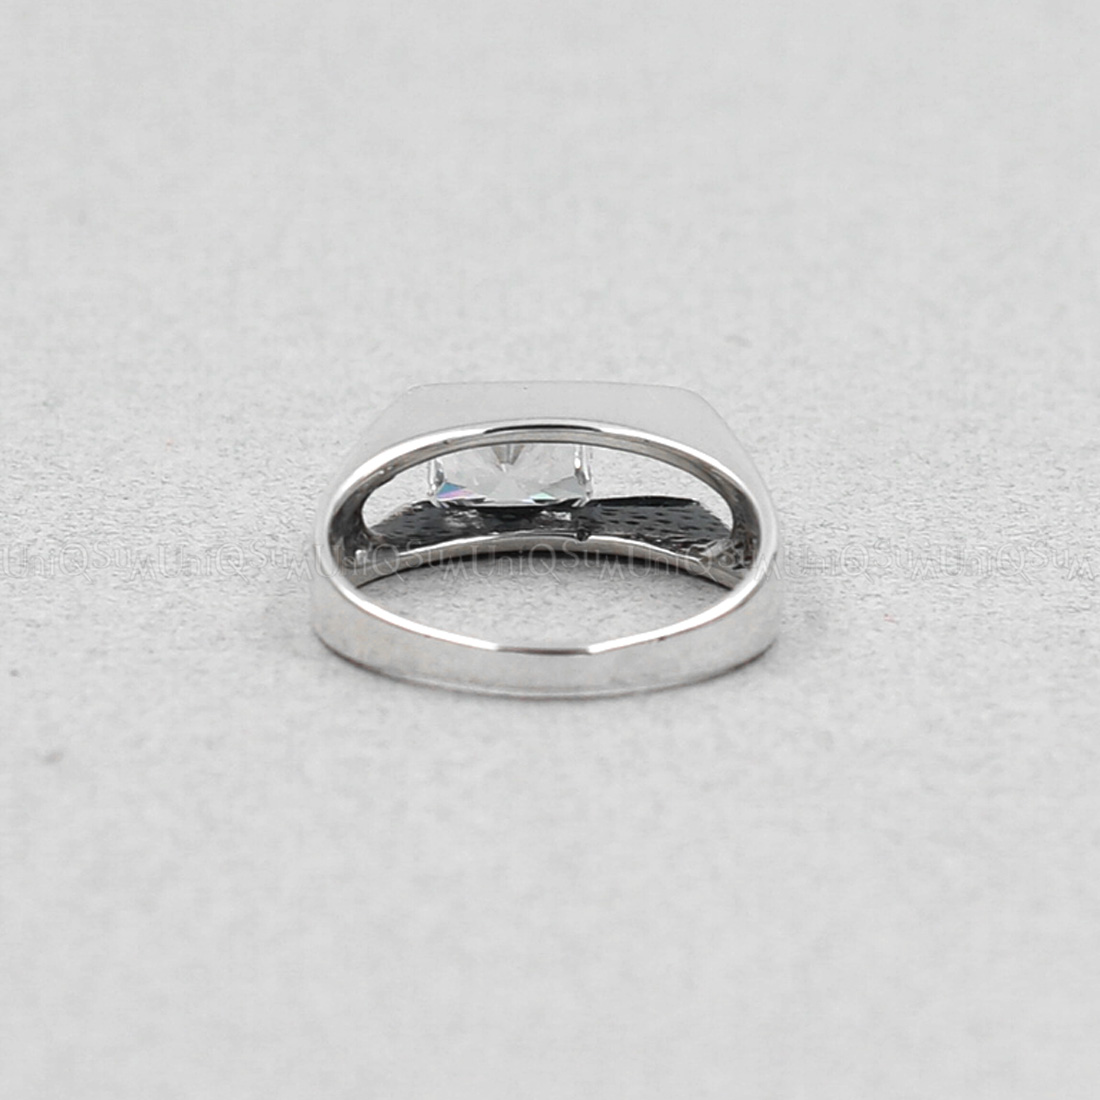 Cubic zirconia rings sterling silver : Movable sterling silver transparent cubic zirconia ring